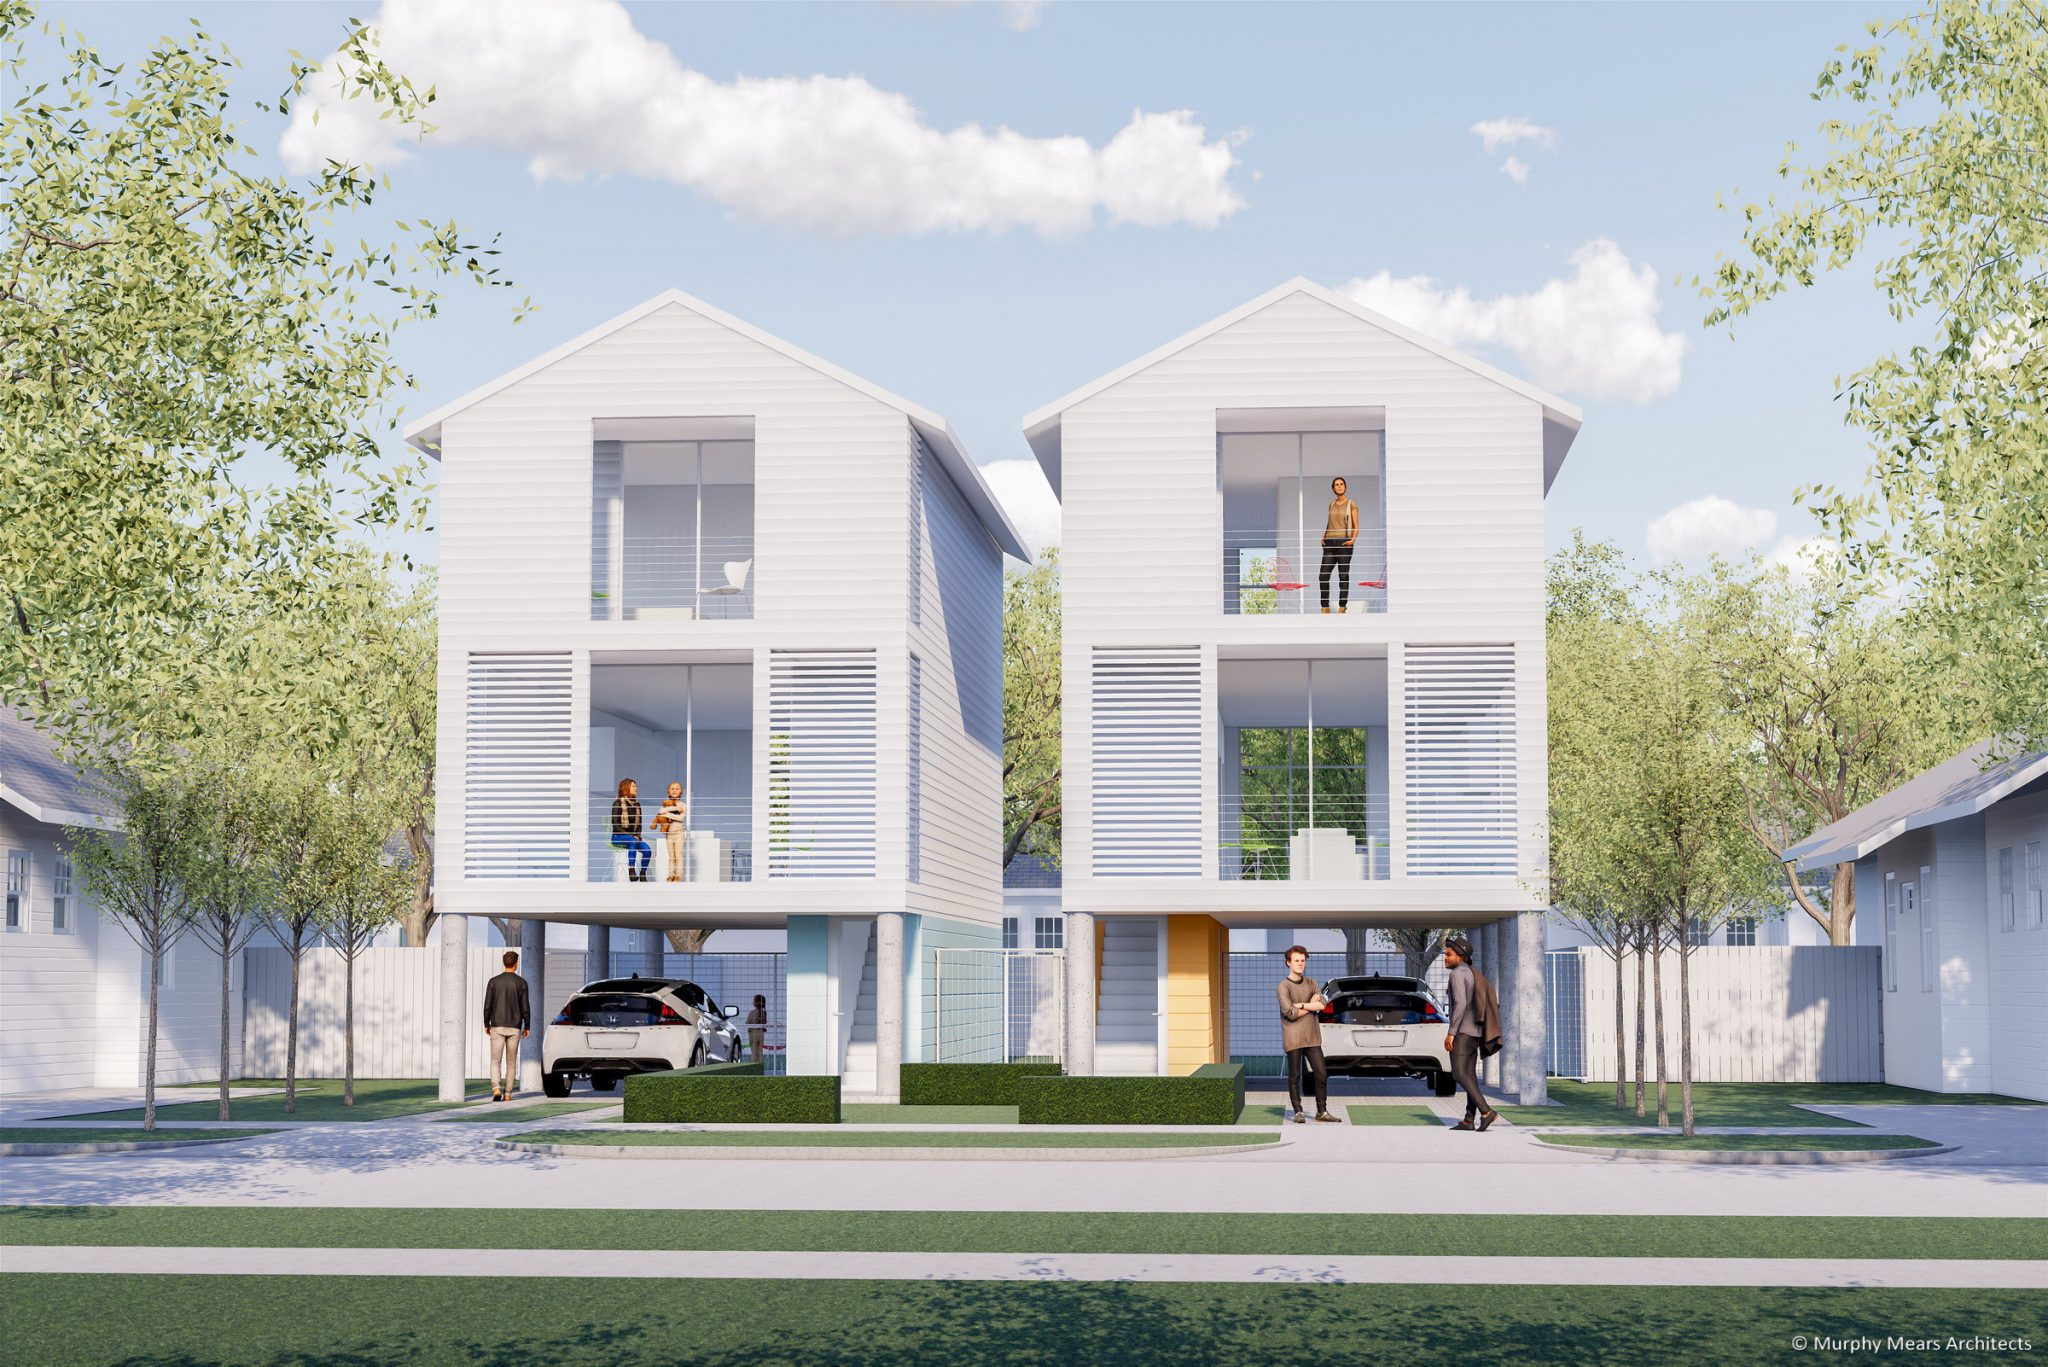 Affordable / Sustainable Housing Competition - City of Houston and AIA - Complete The Community - Two Units on One Lot.